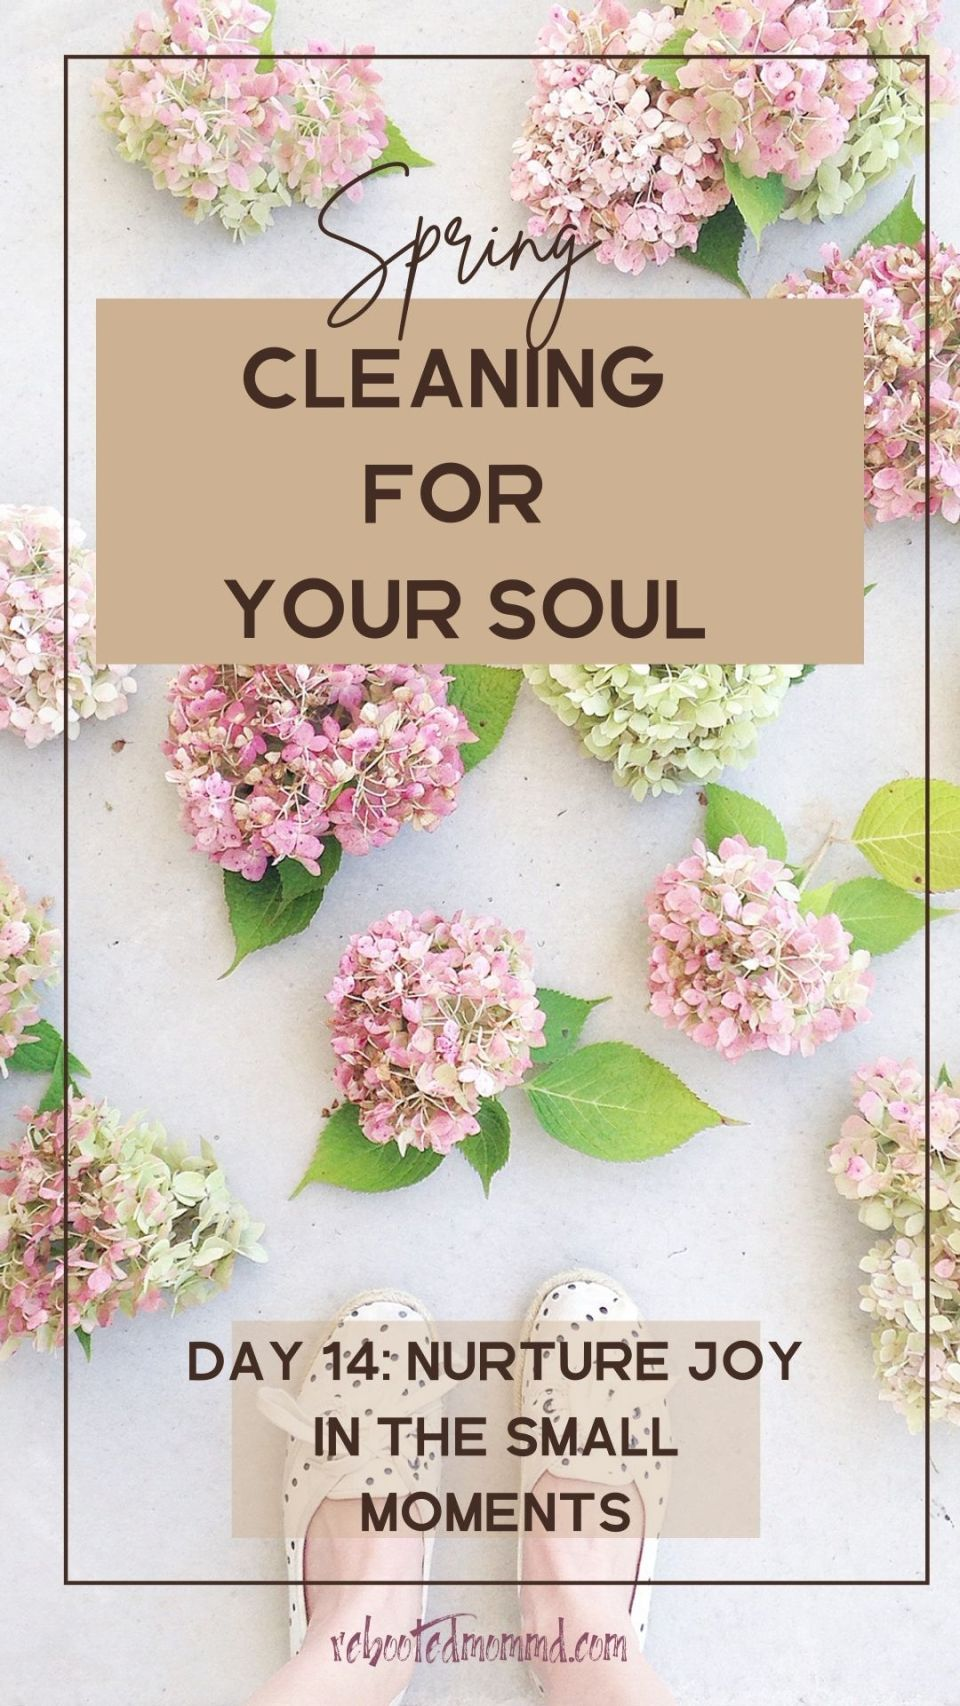 Spring Cleaning for Your Soul, Day 14: Nurture Joy in the Small Moments